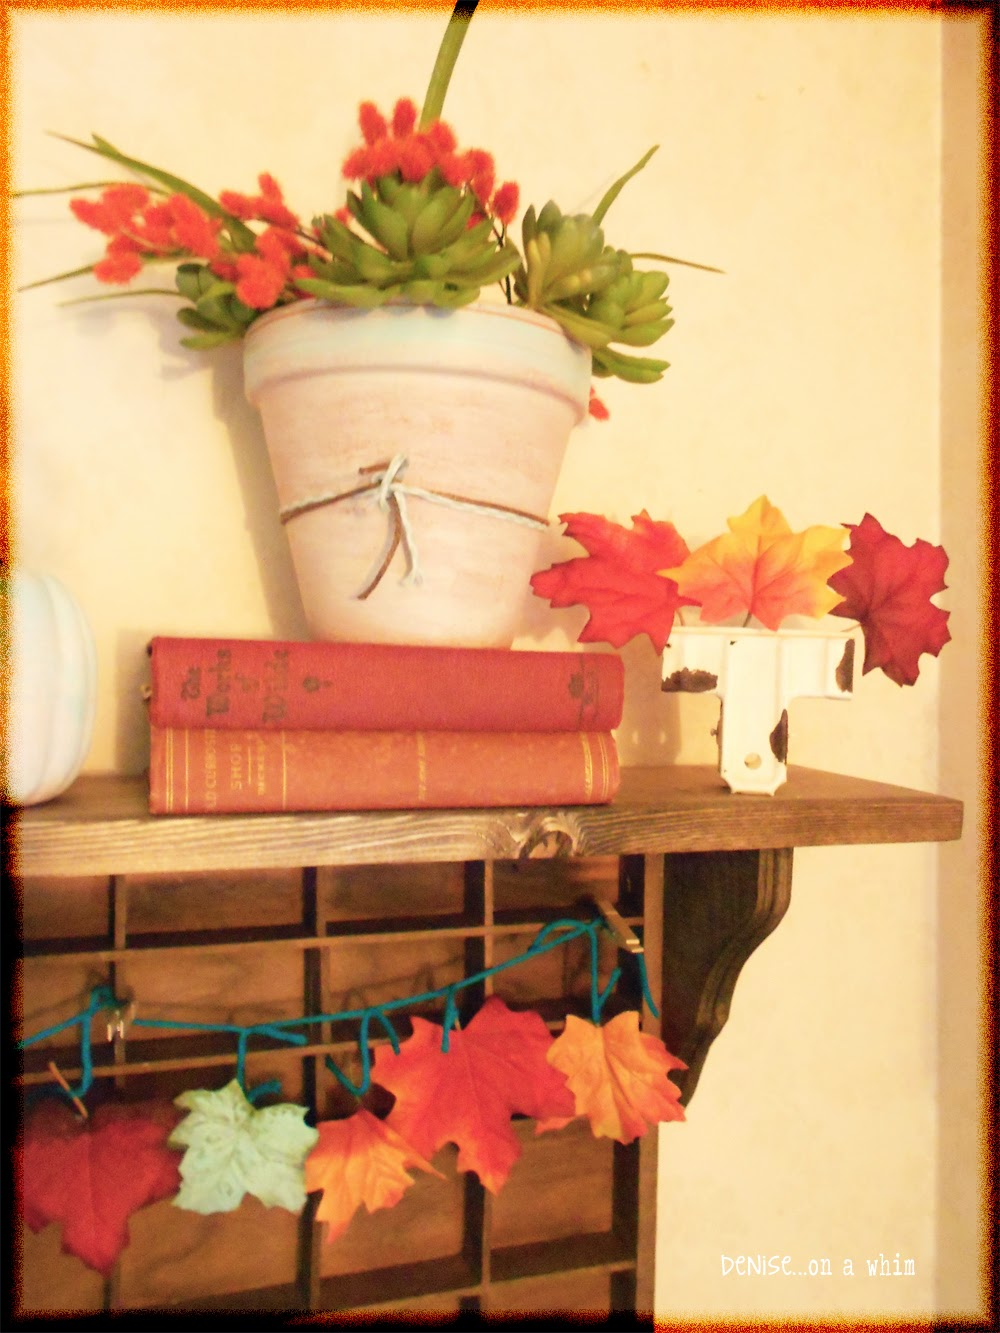 Old Books and Pretty Flowers in a Fall Vignette from Denise on a Whim